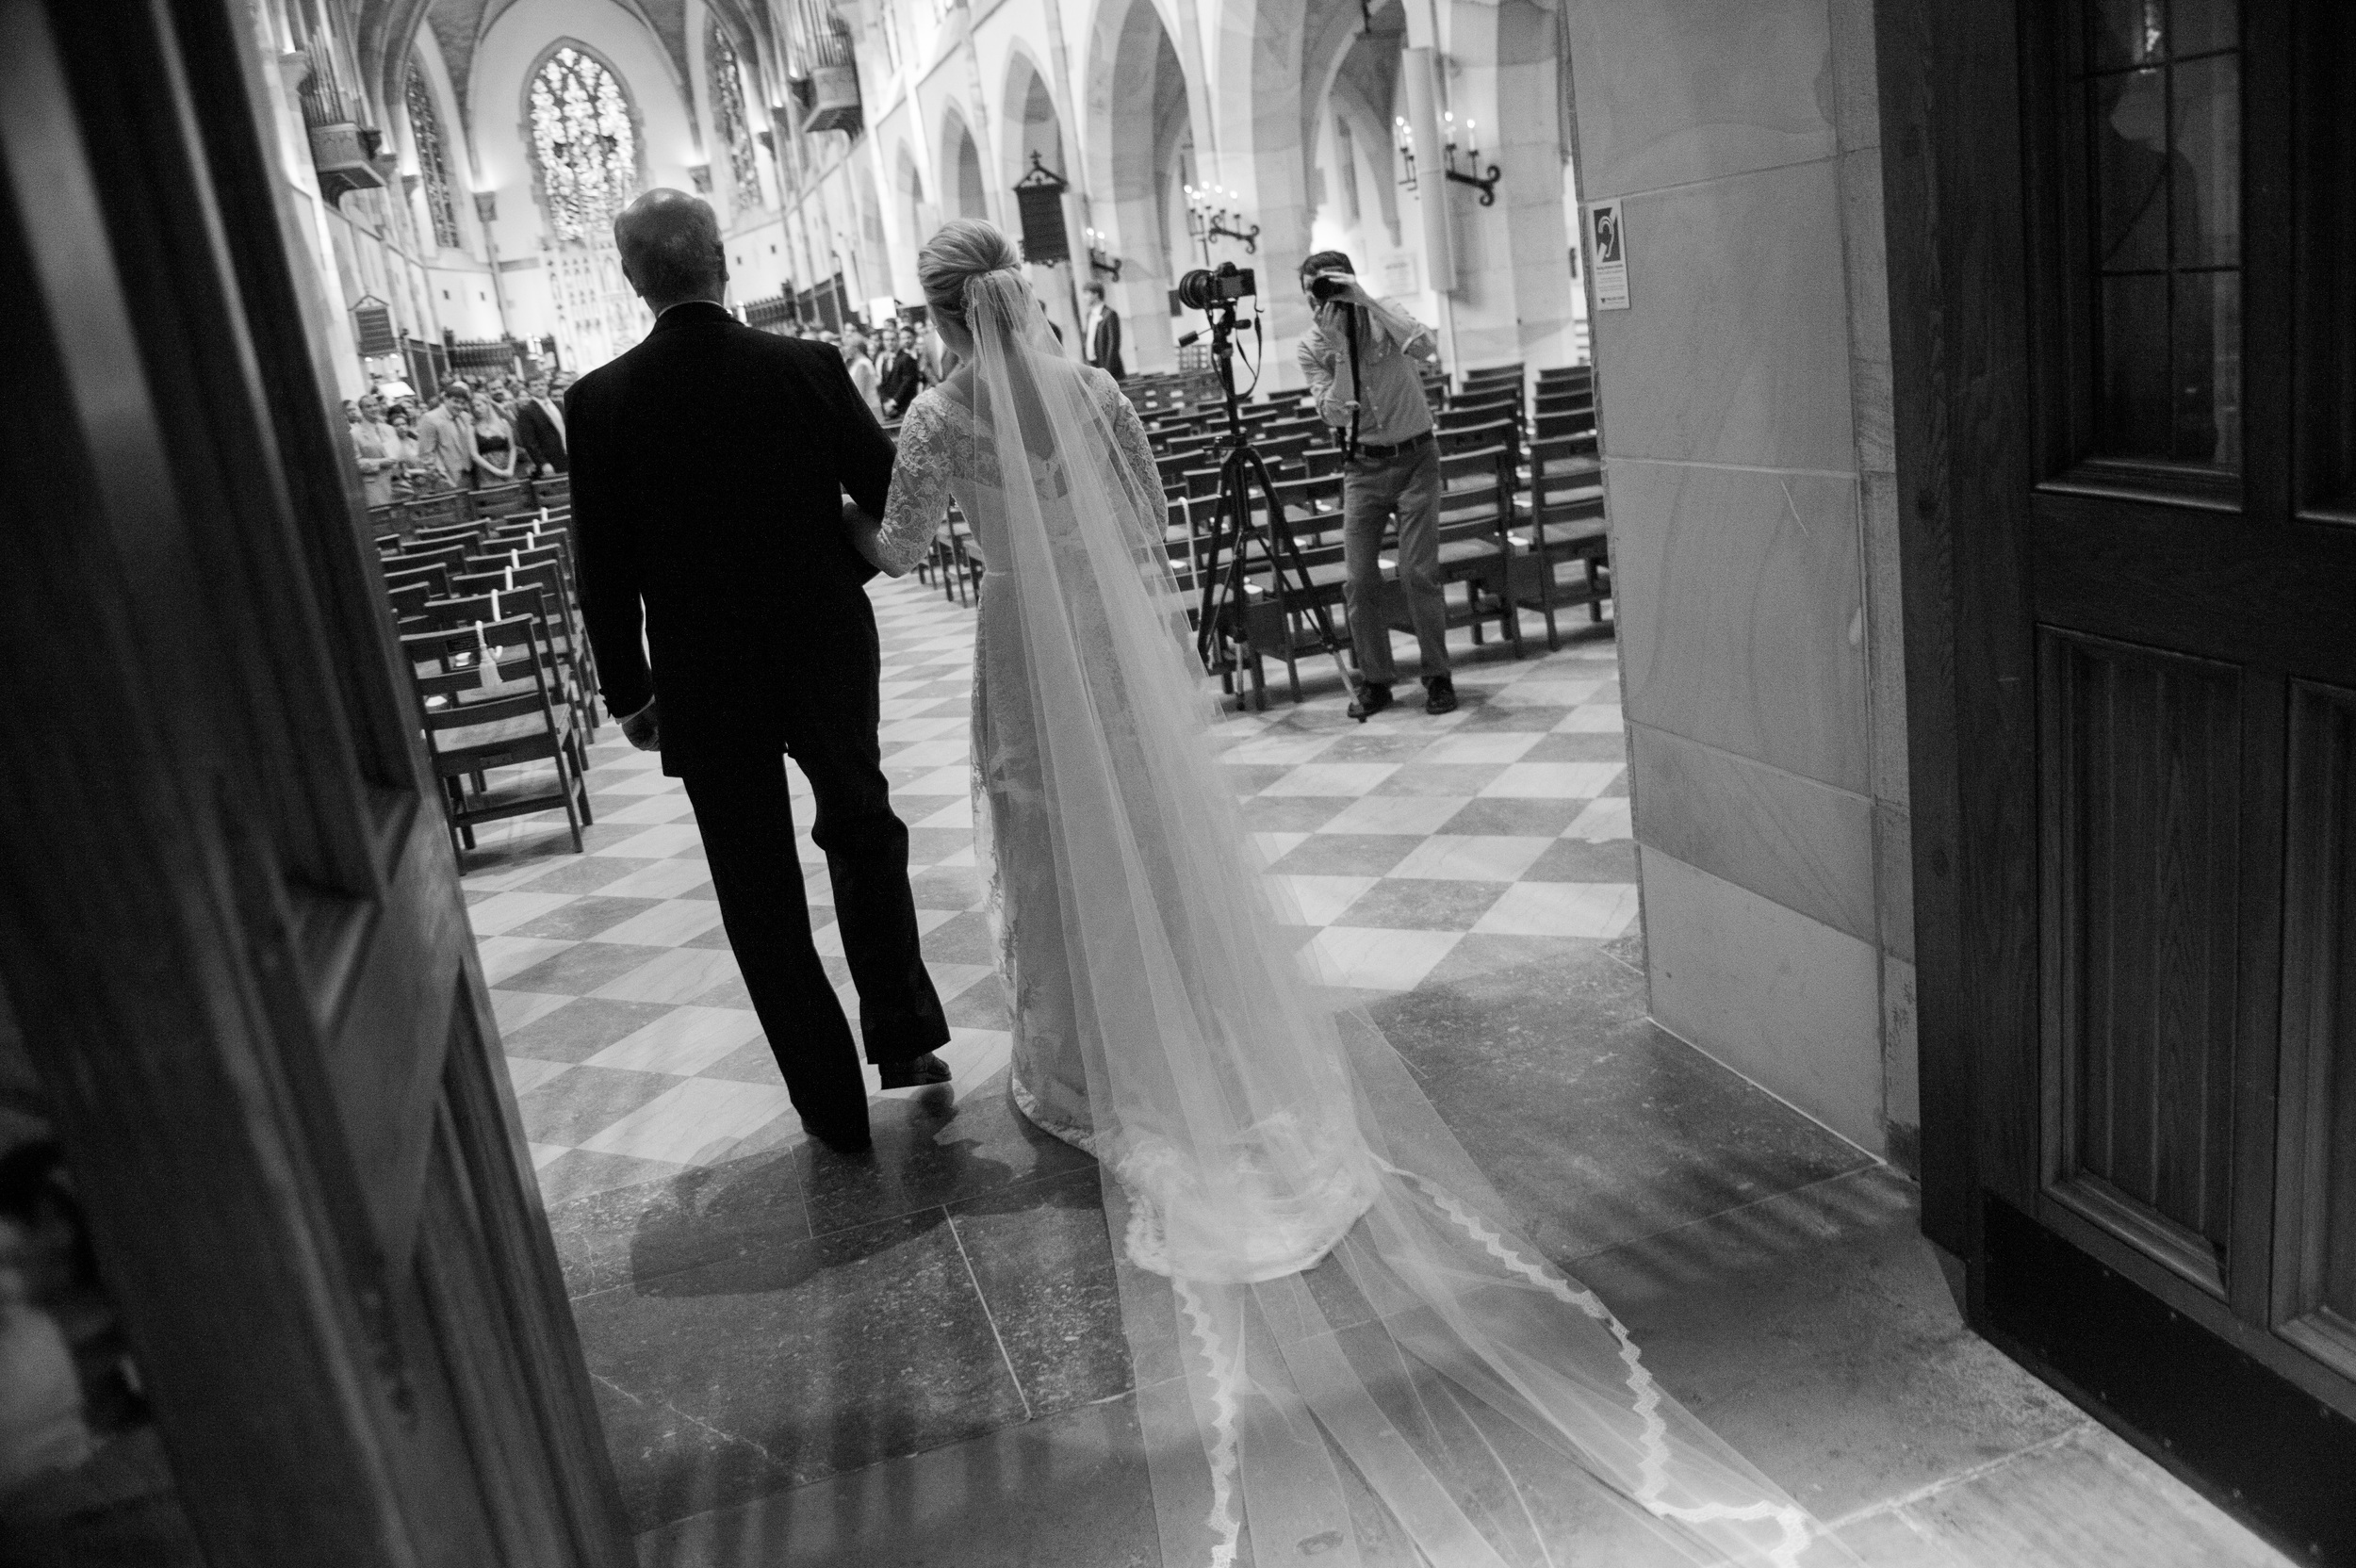 May 17th, 2014 - Sarah & Will are joined by Family and Friends during the union of their marriage in Sewanee  Tennessee at the All Saints' Chapel. Photography by Griffin Hart Davis of exumphoto.